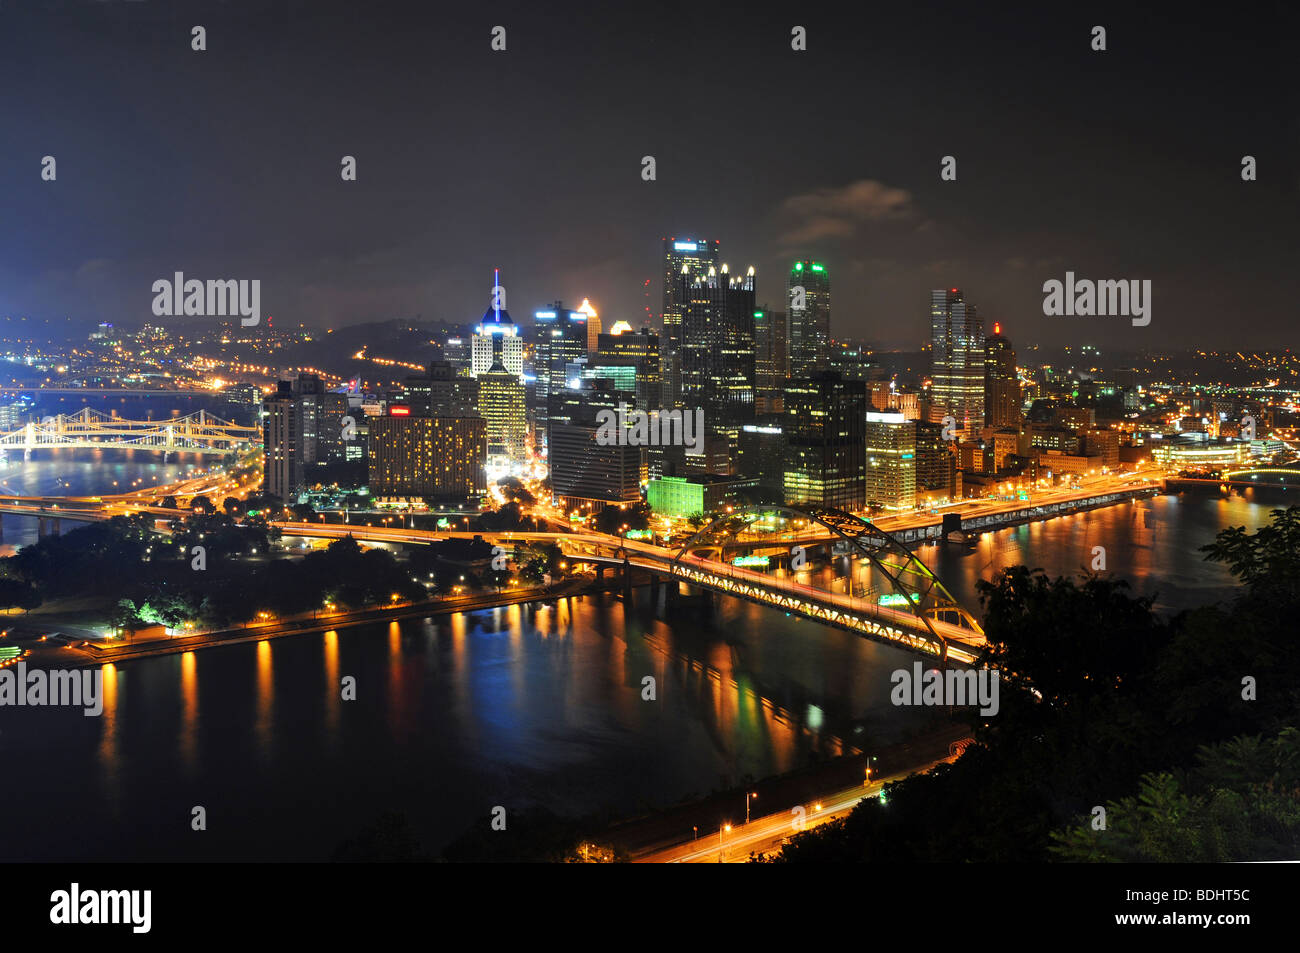 Pittsburgh's skyline at night viewed from the Duquesne Incline - Stock Image